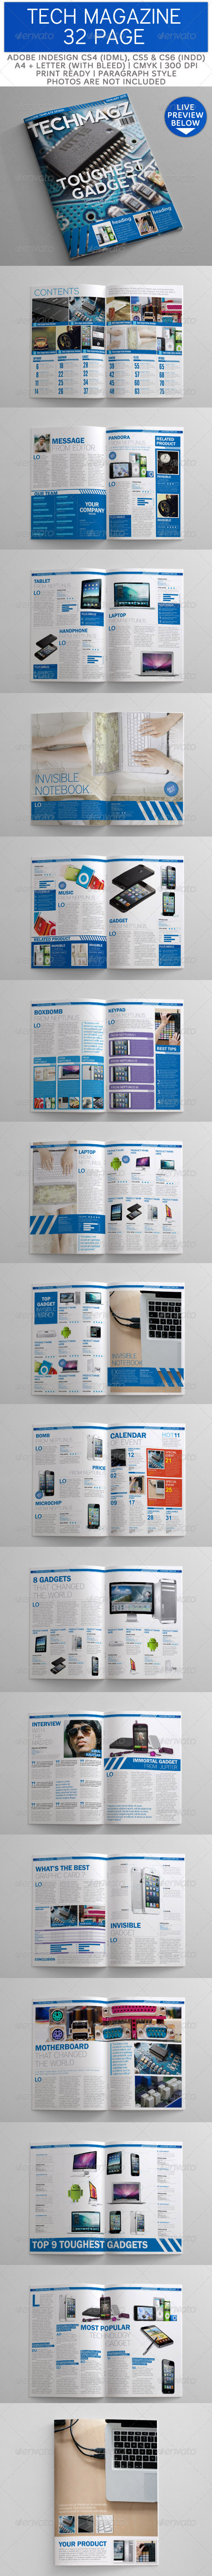 GraphicRiver Tech Magazine Template 32 Page 3326299